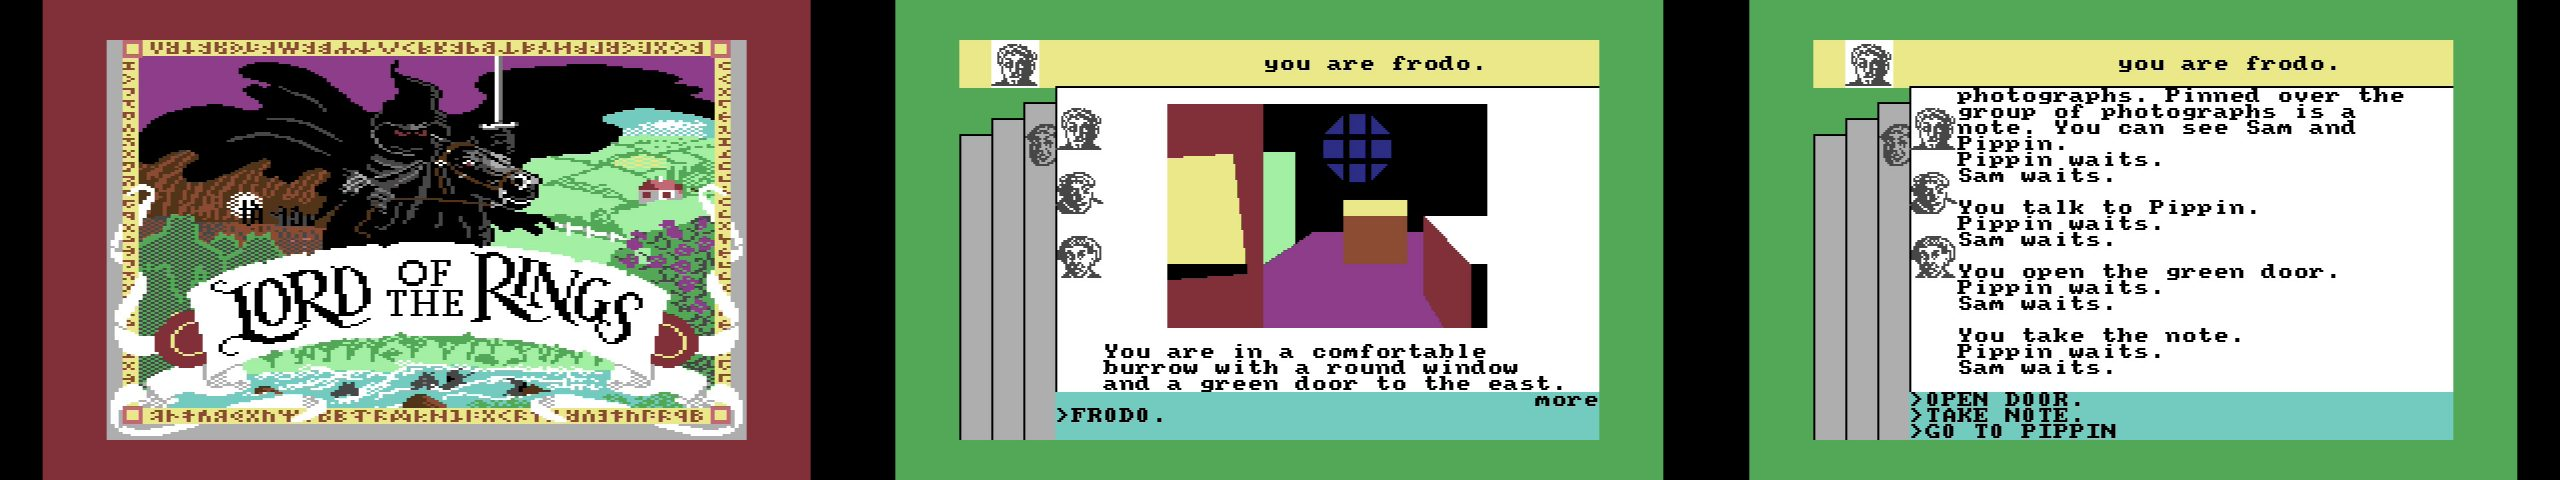 The C64 Maxi Lord of the Rings